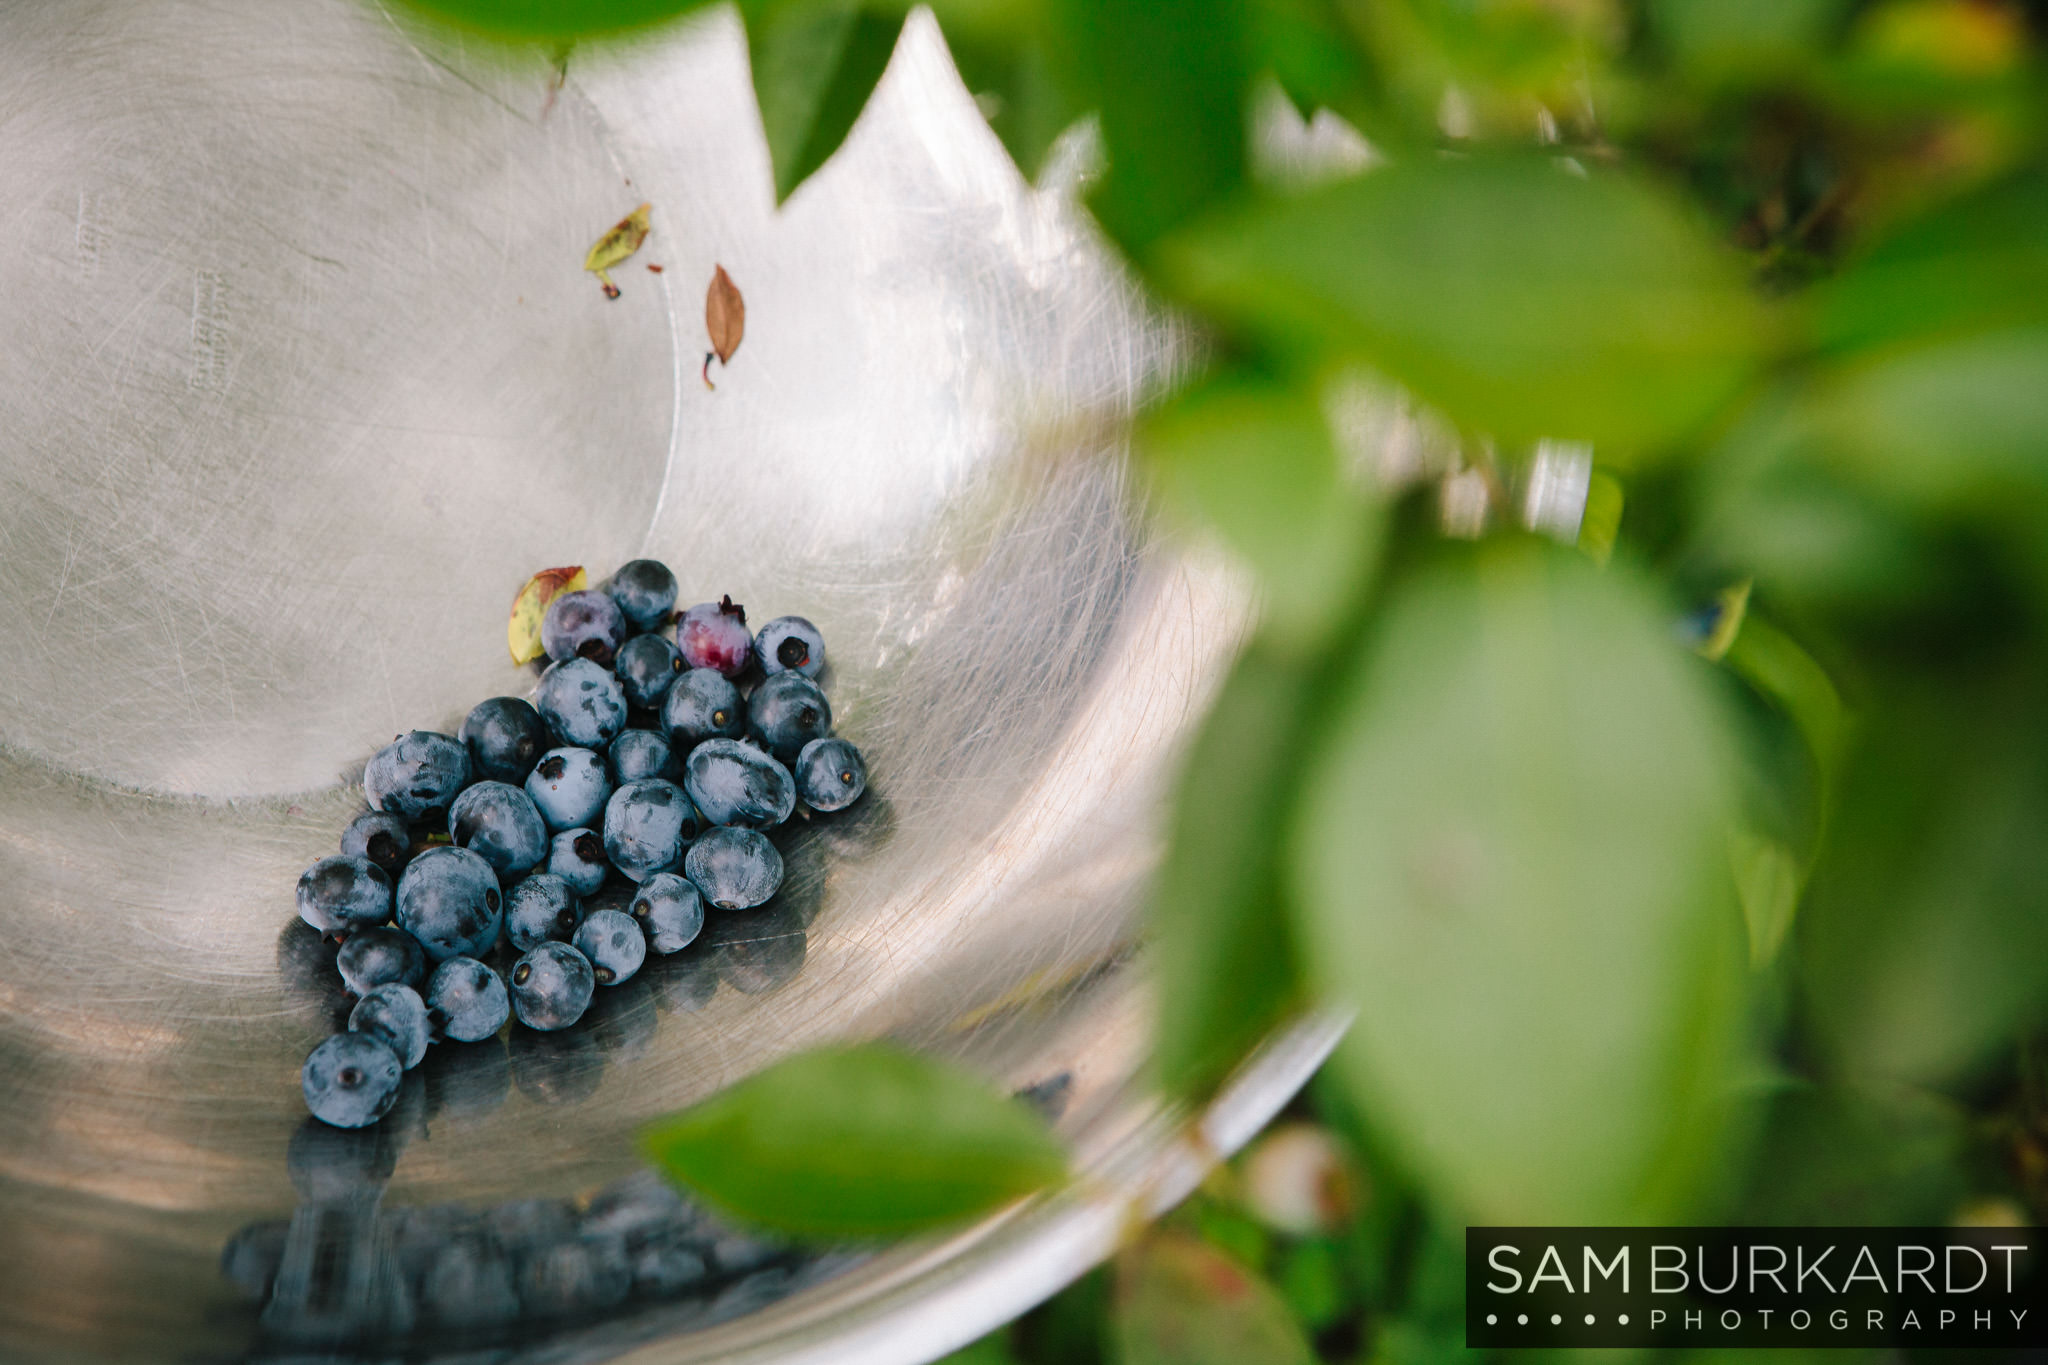 samburkardt_blueberries_kent_connecticut_005.jpg